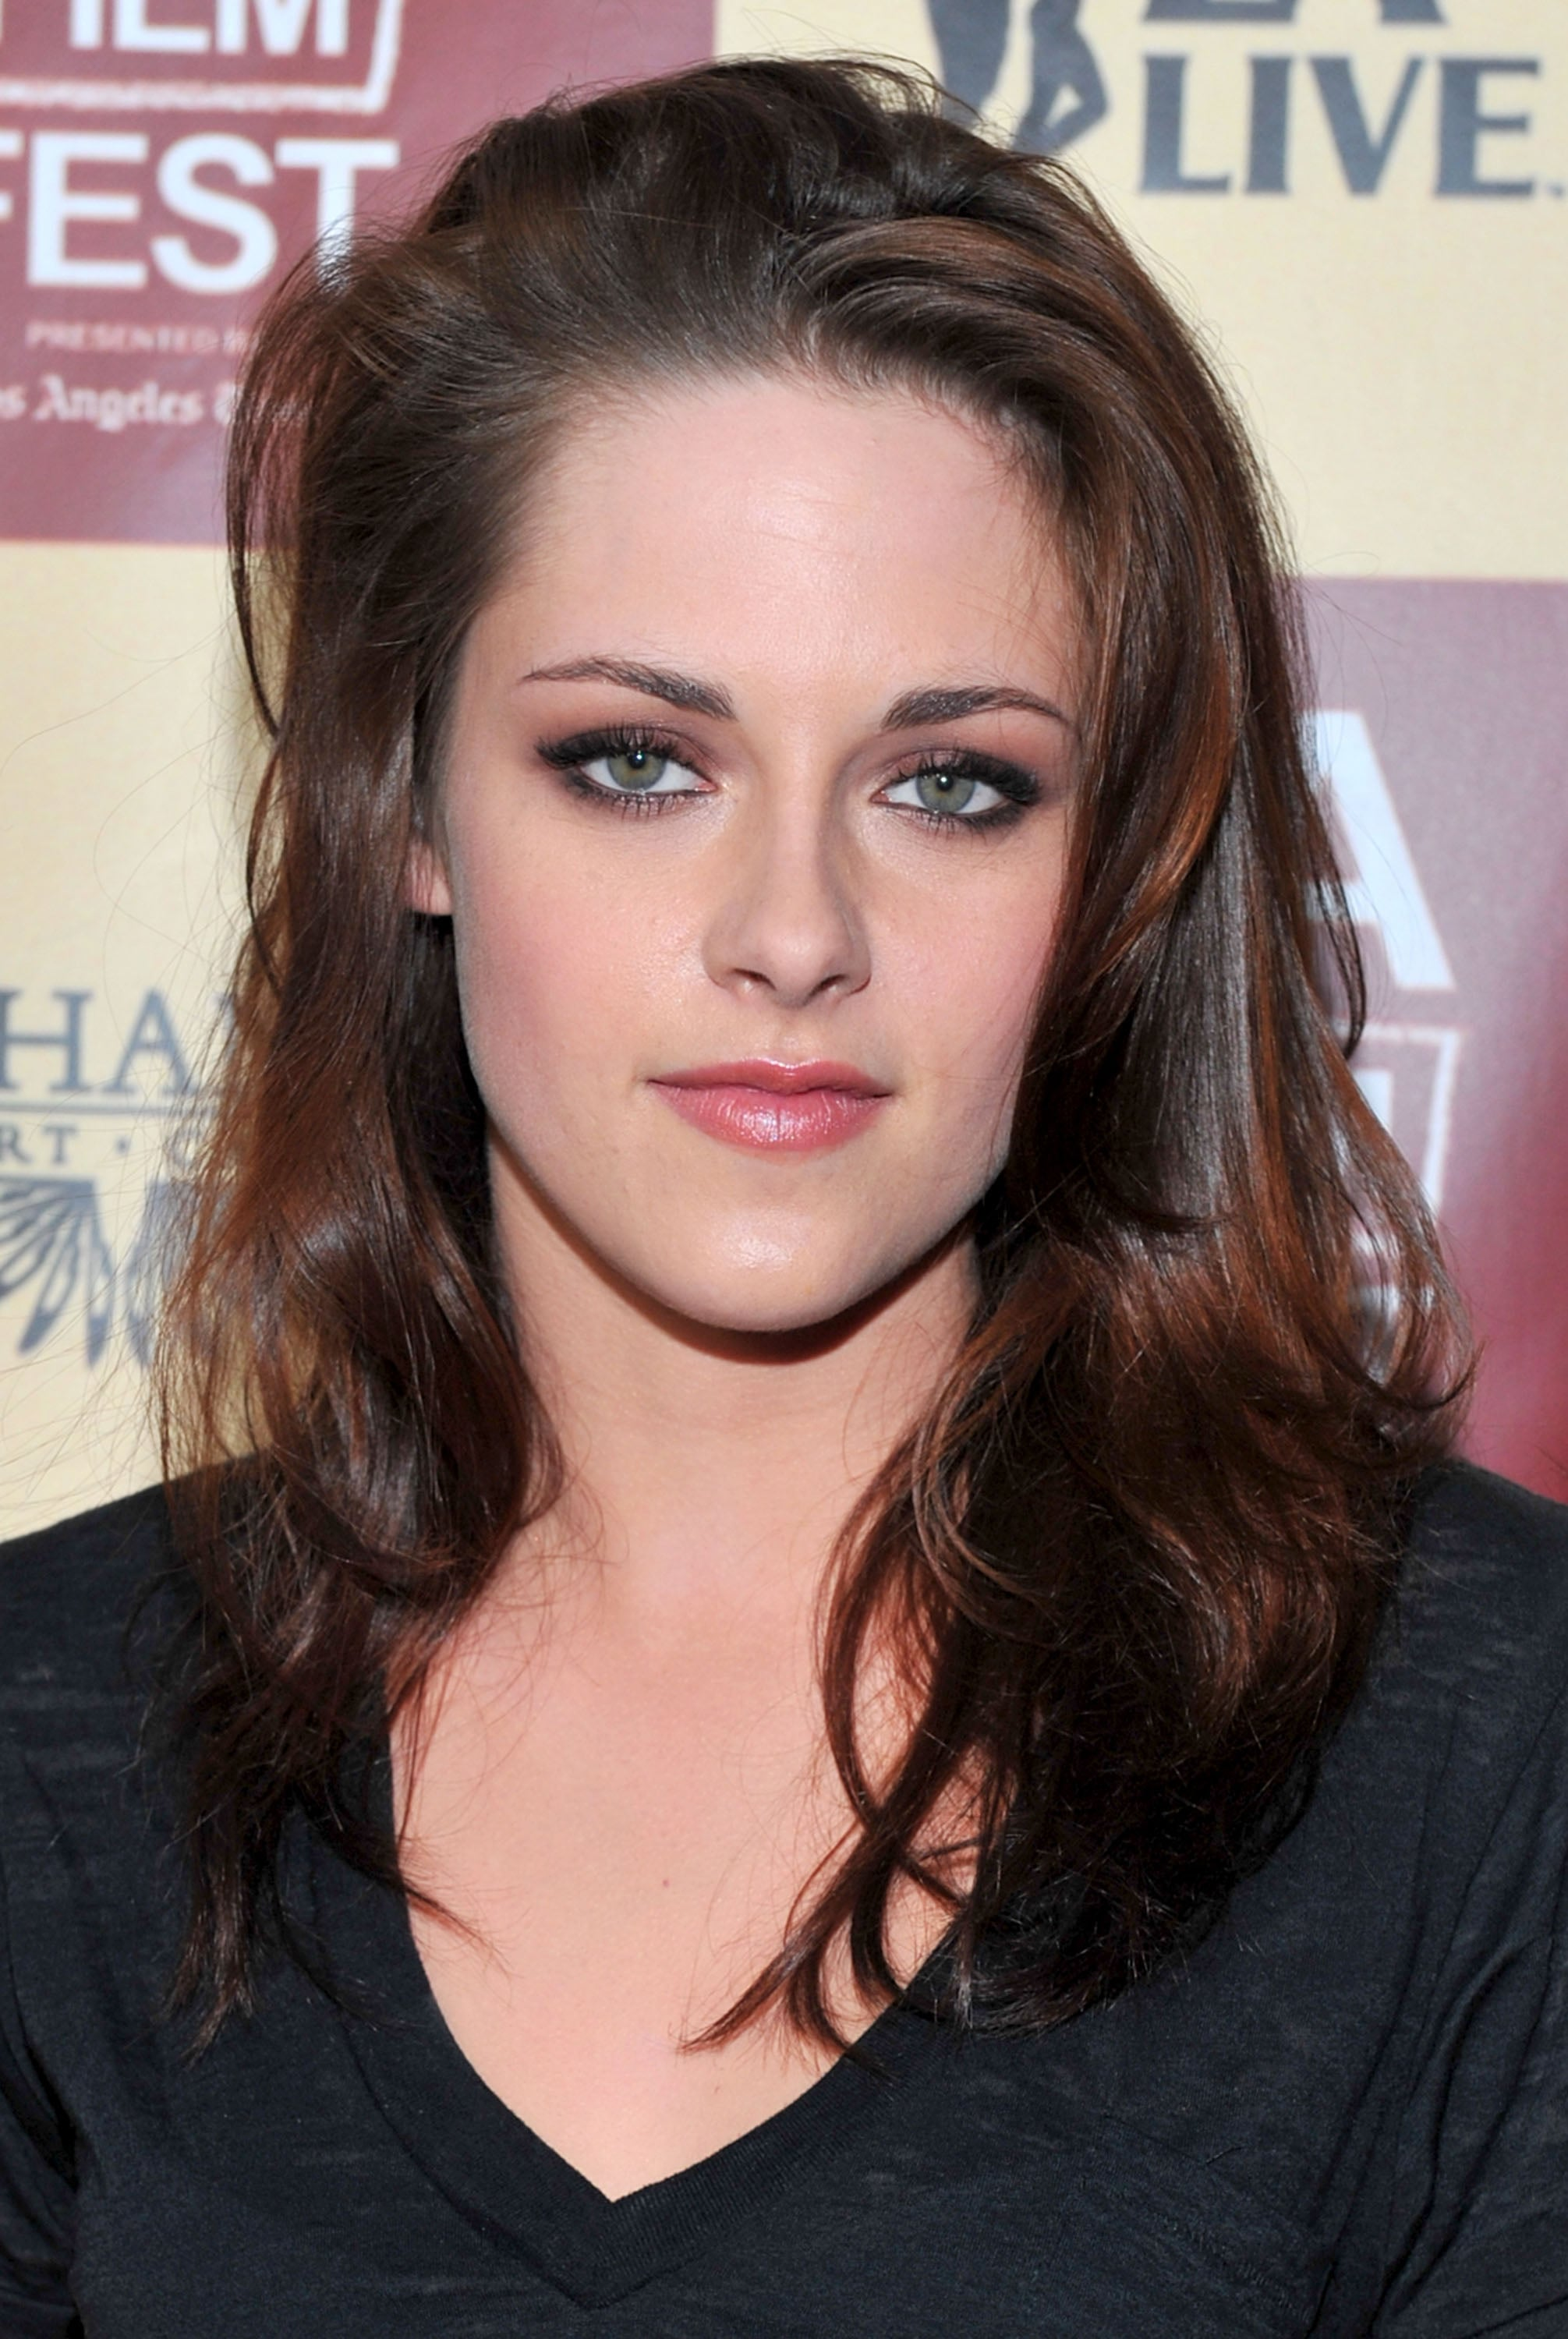 Kristen Stewart S Midlength Brown Hair In 2011 The 22 Wildest Celebrity Hair Transformations Of The Last Decade Popsugar Beauty Photo 26